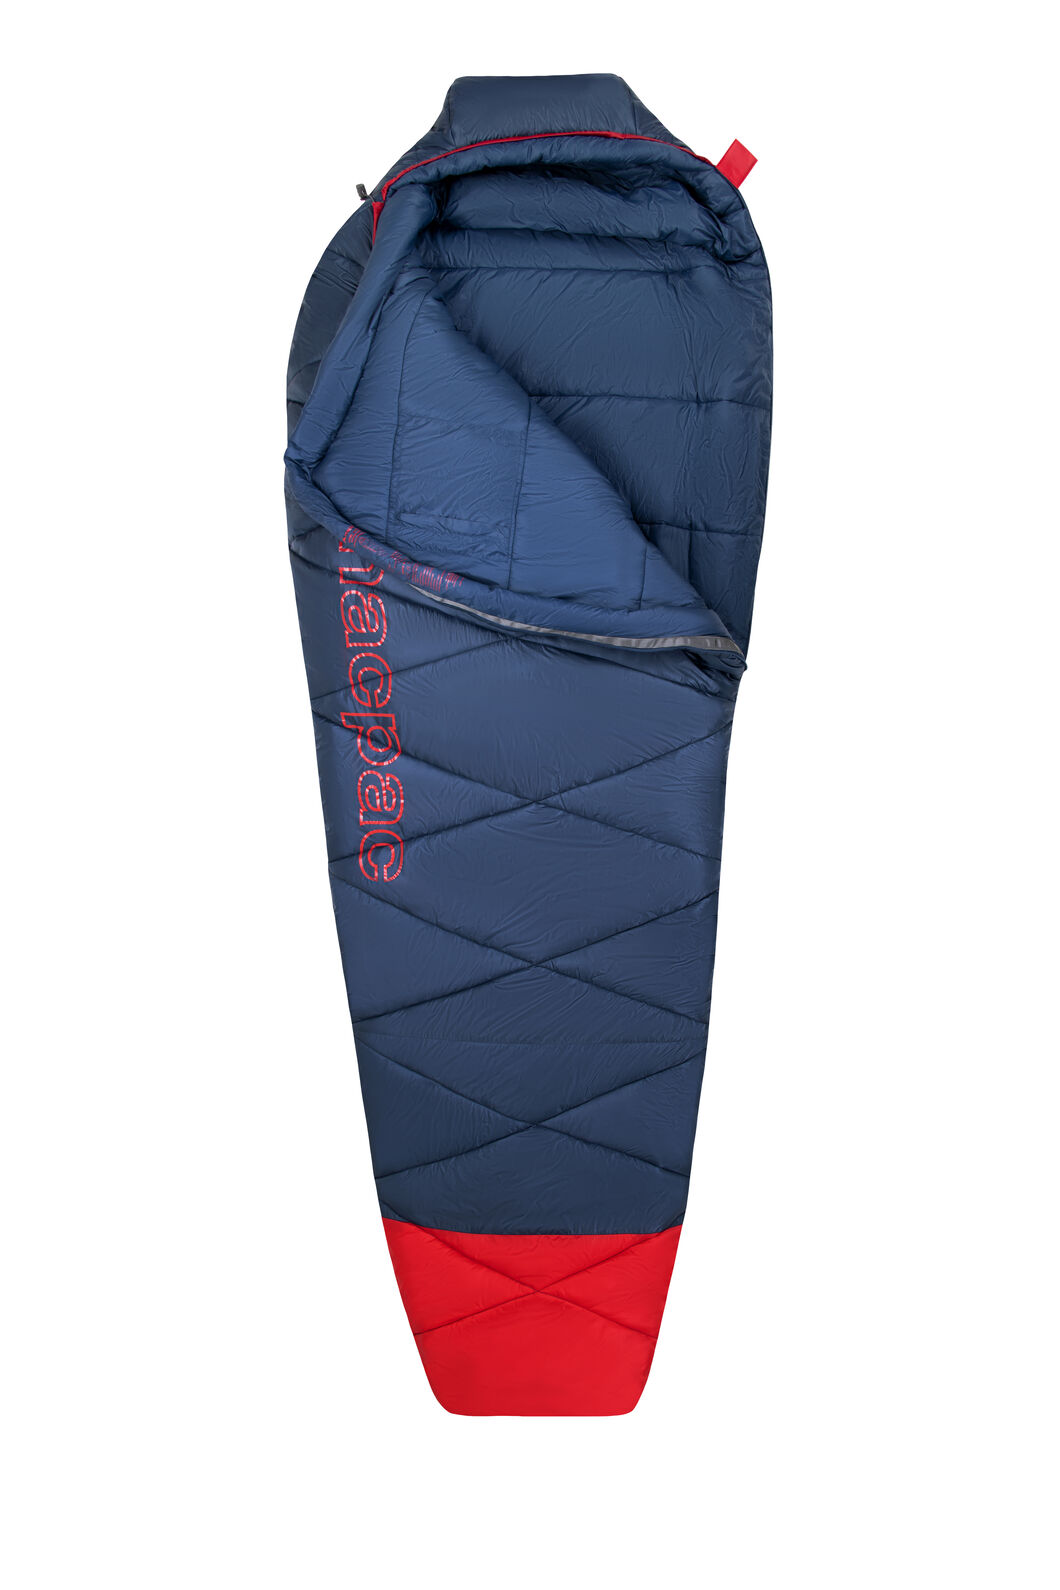 Macpac Aspire 360 Sleeping Bag — Extra Large, Blue Wing Teal/Salsa, hi-res